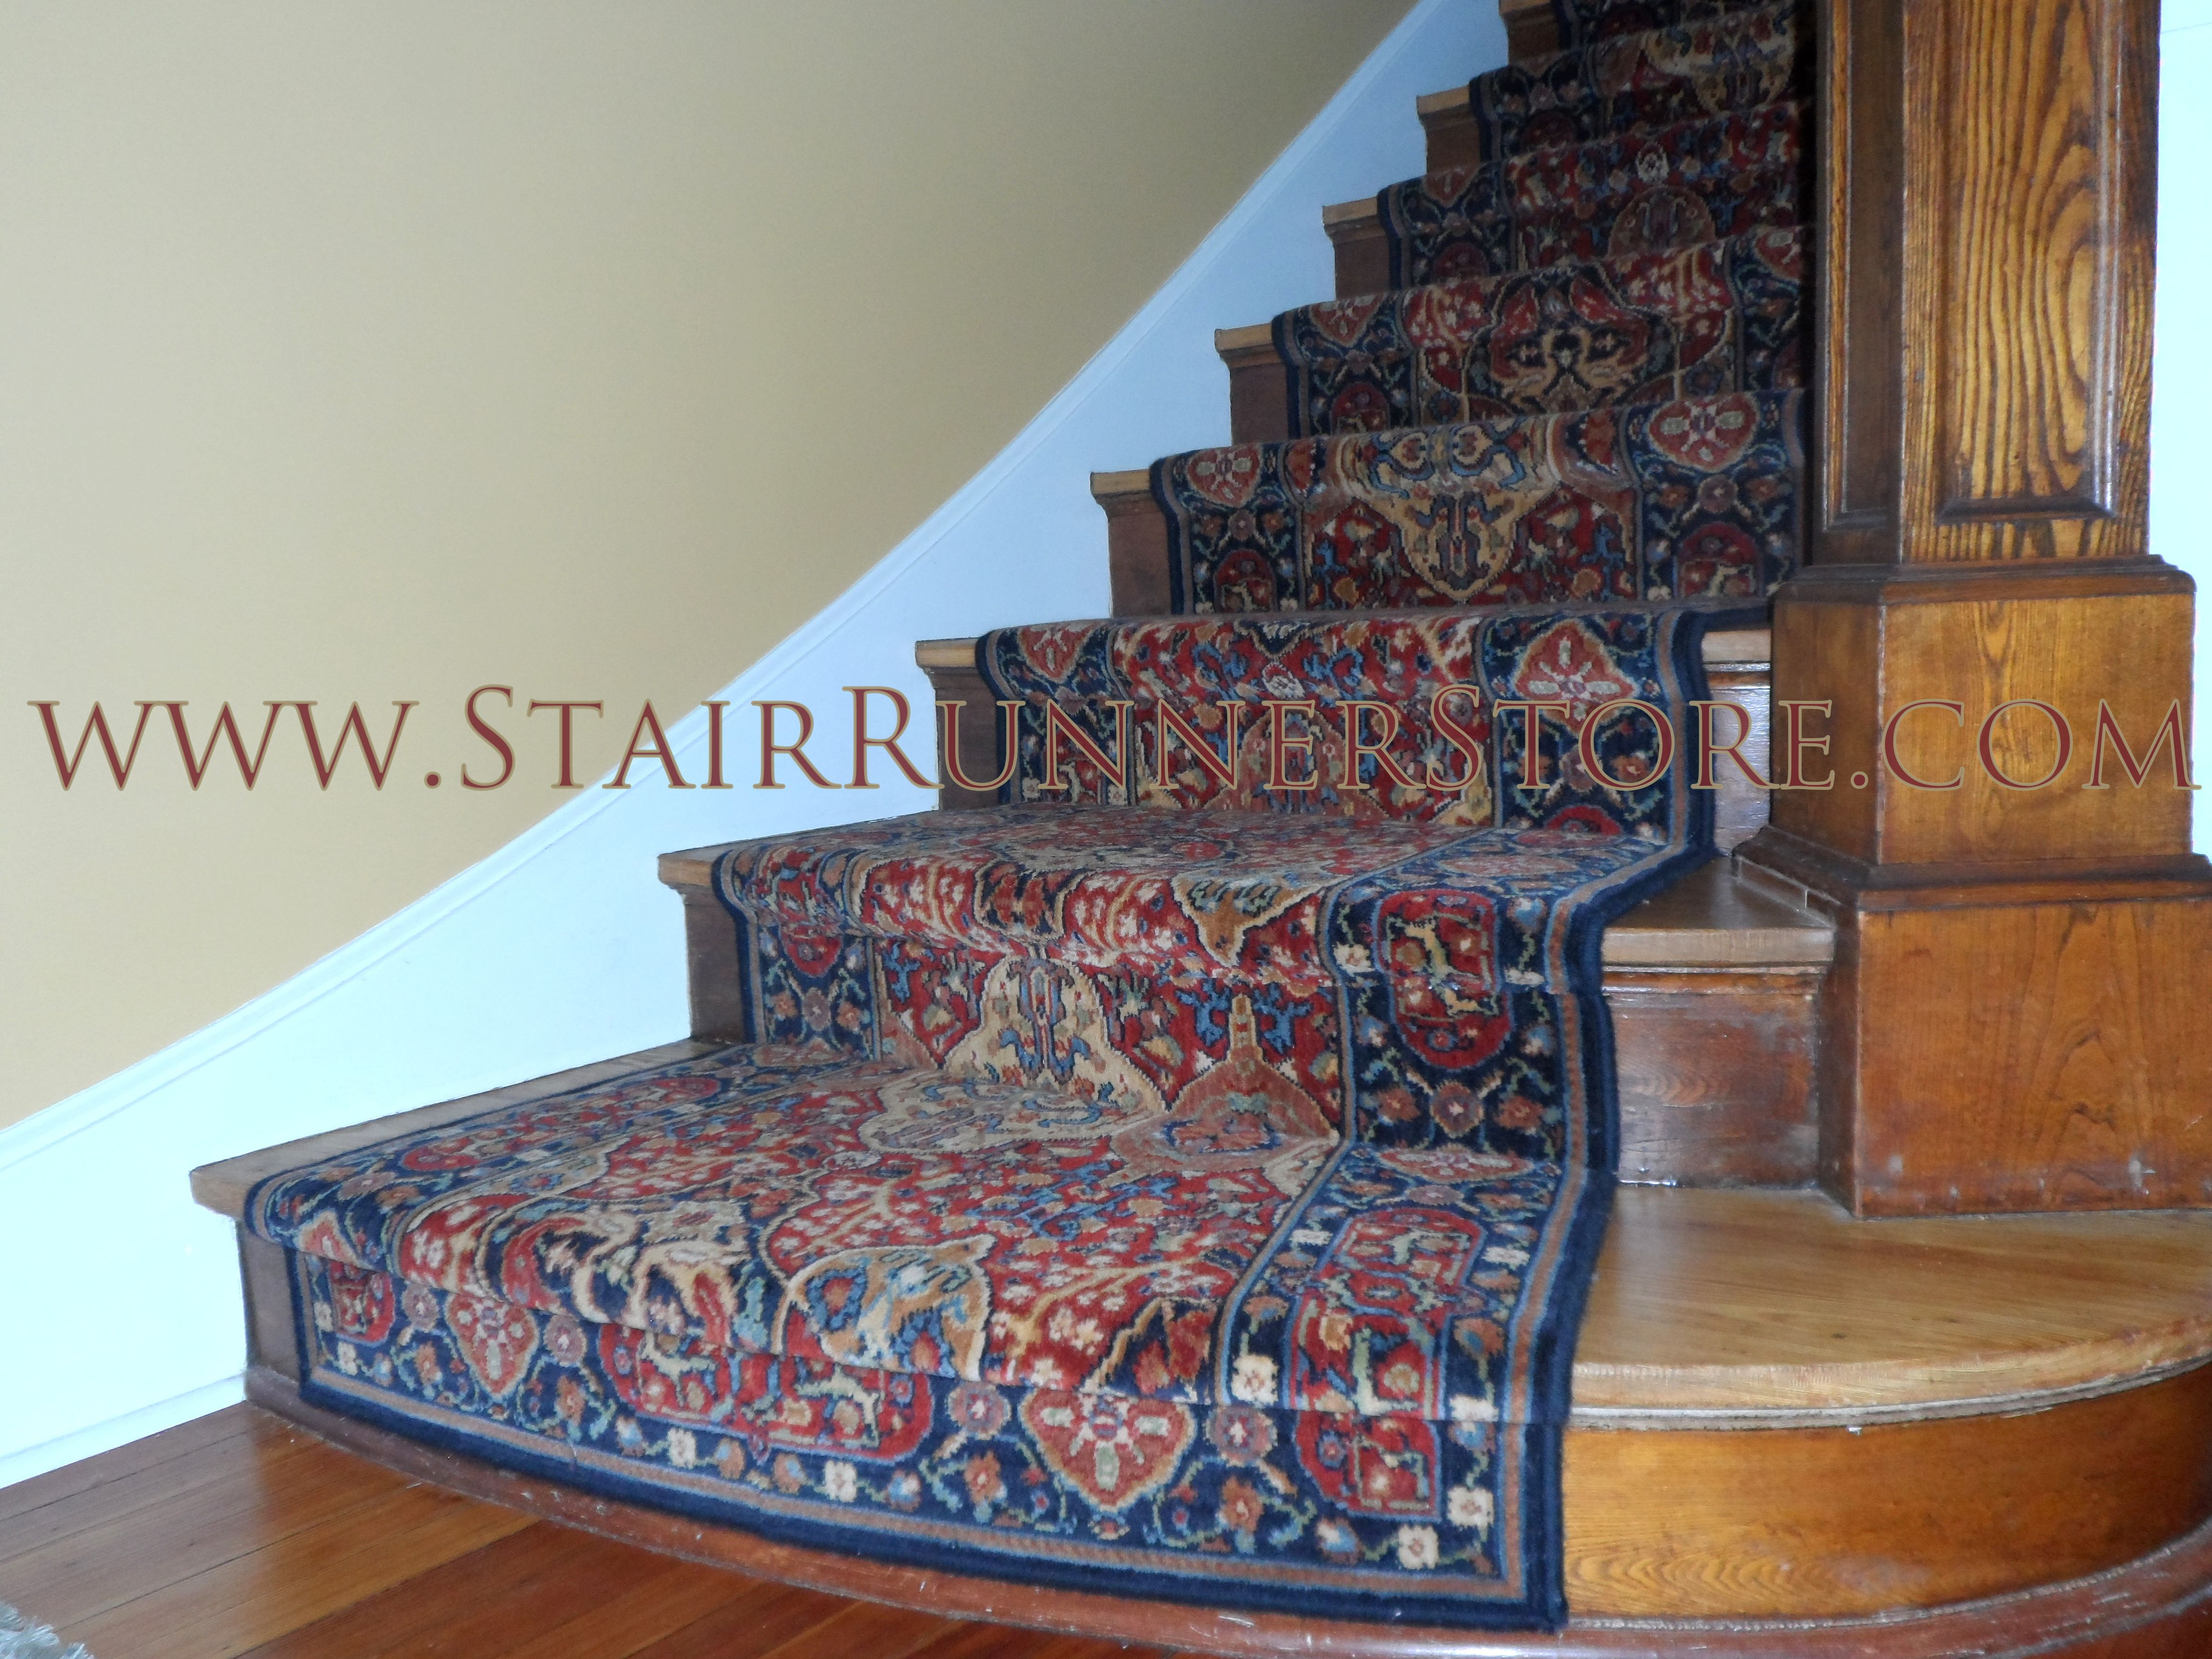 Gentil Our Latest Karastan Stair Runner Installation With Tricky Bow Front Steps  Where John Has Fabricated The Runner To Create A Gentle Curve And Has Added  A ...